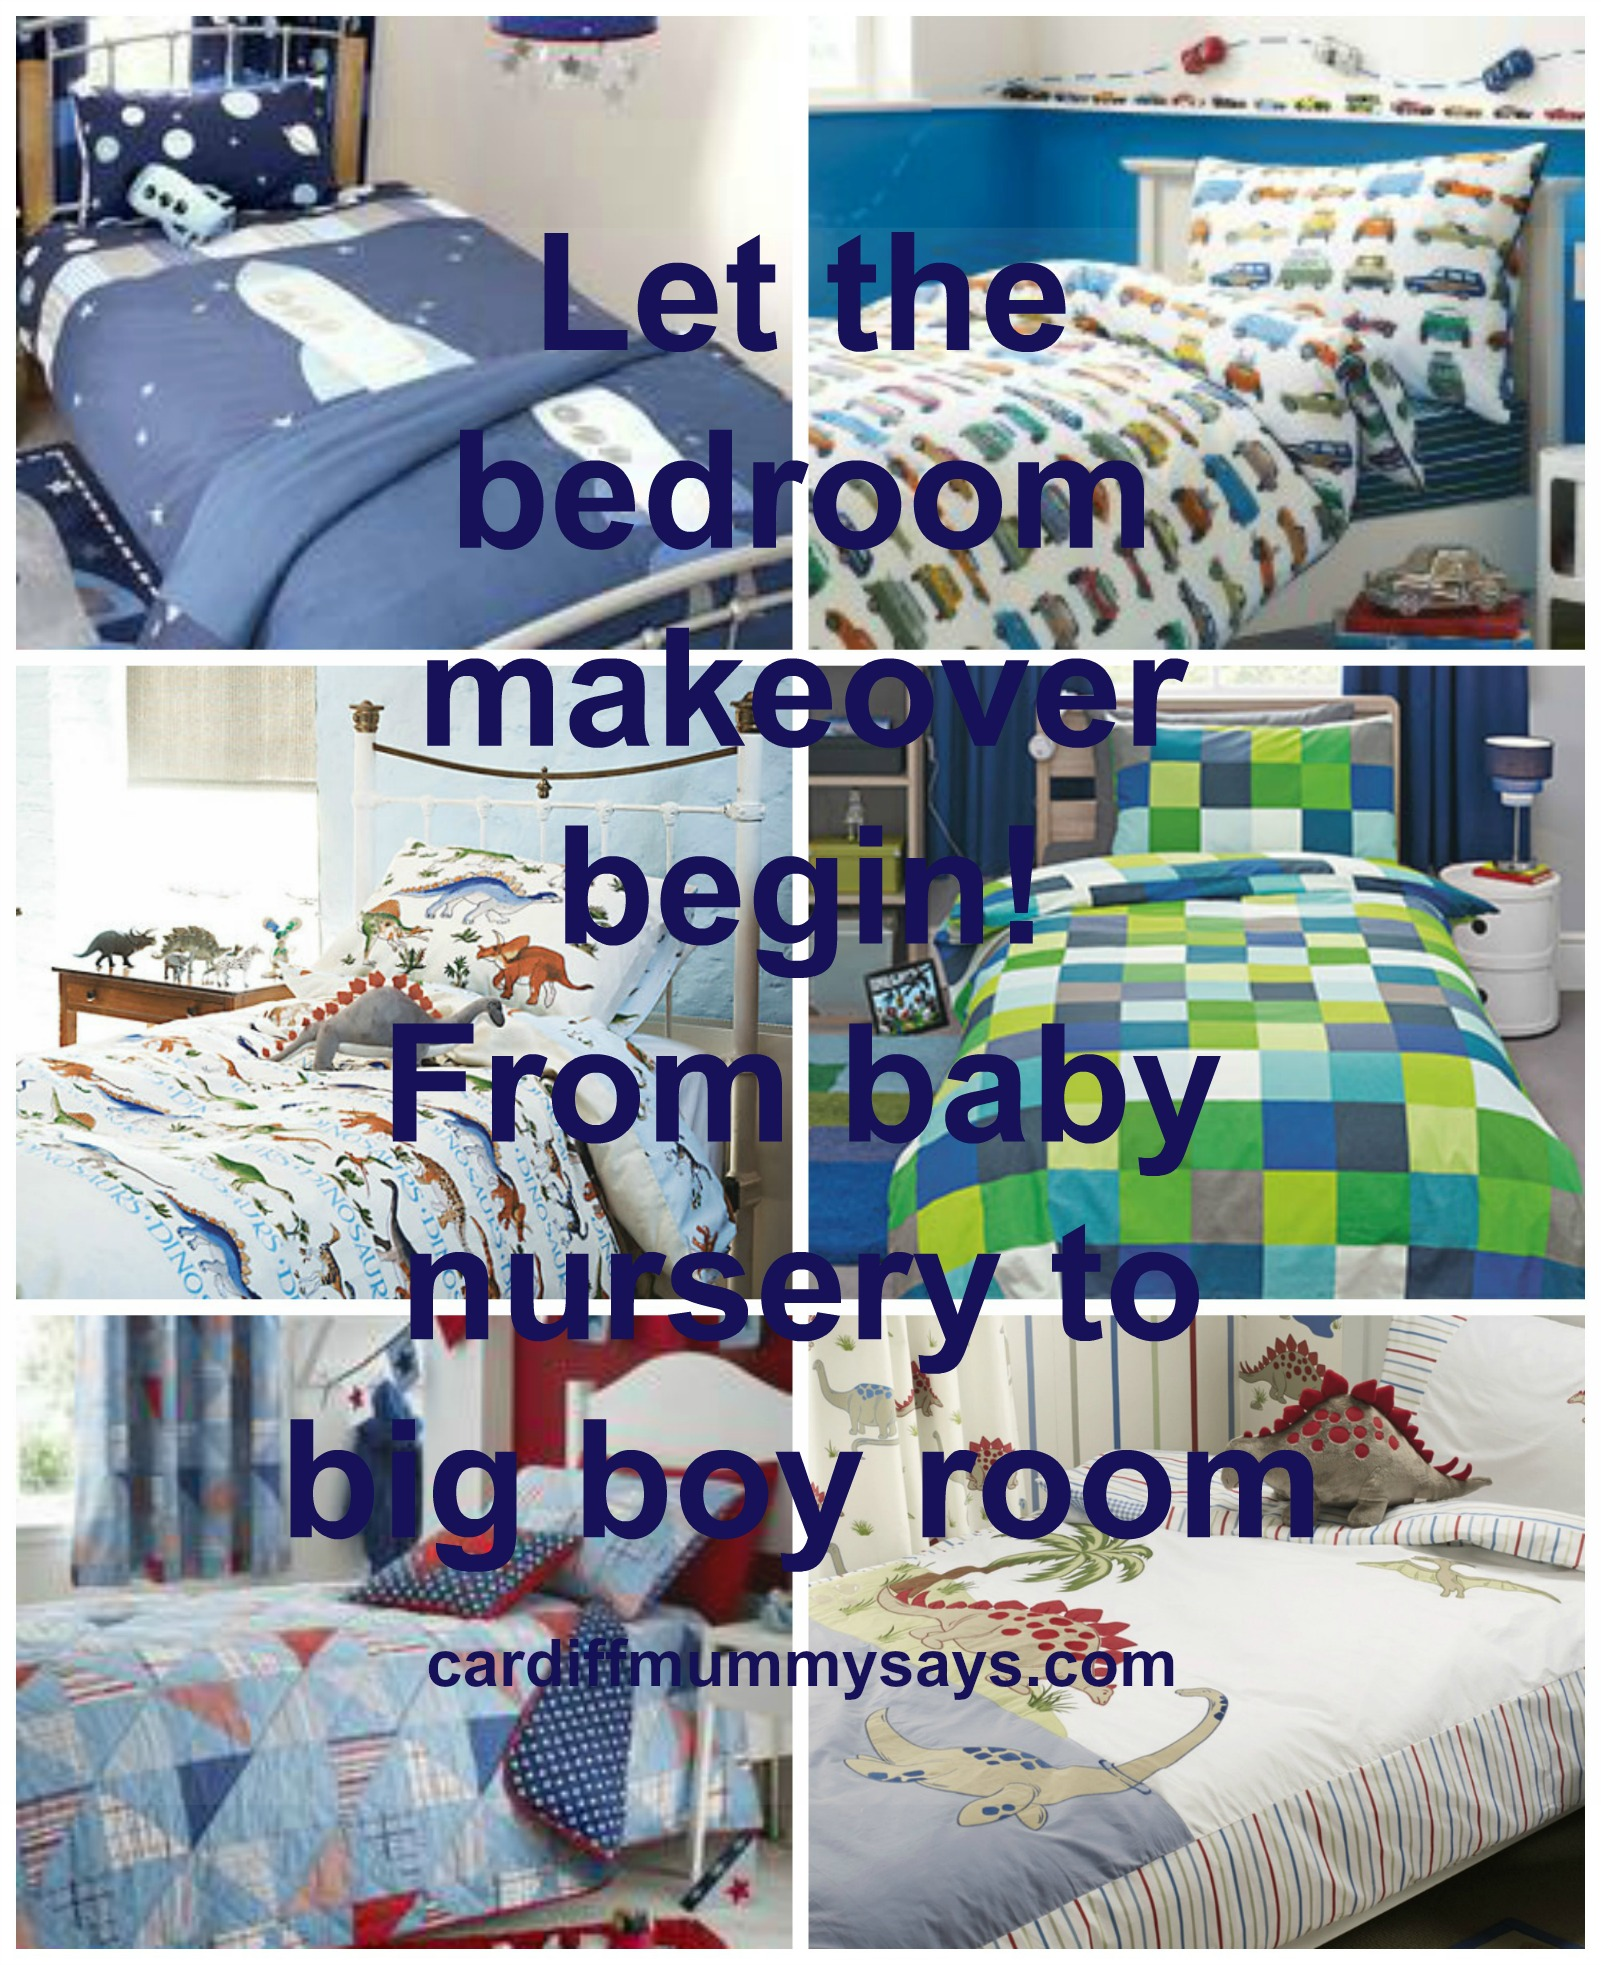 Boys bedroom ideas bedding collage with text